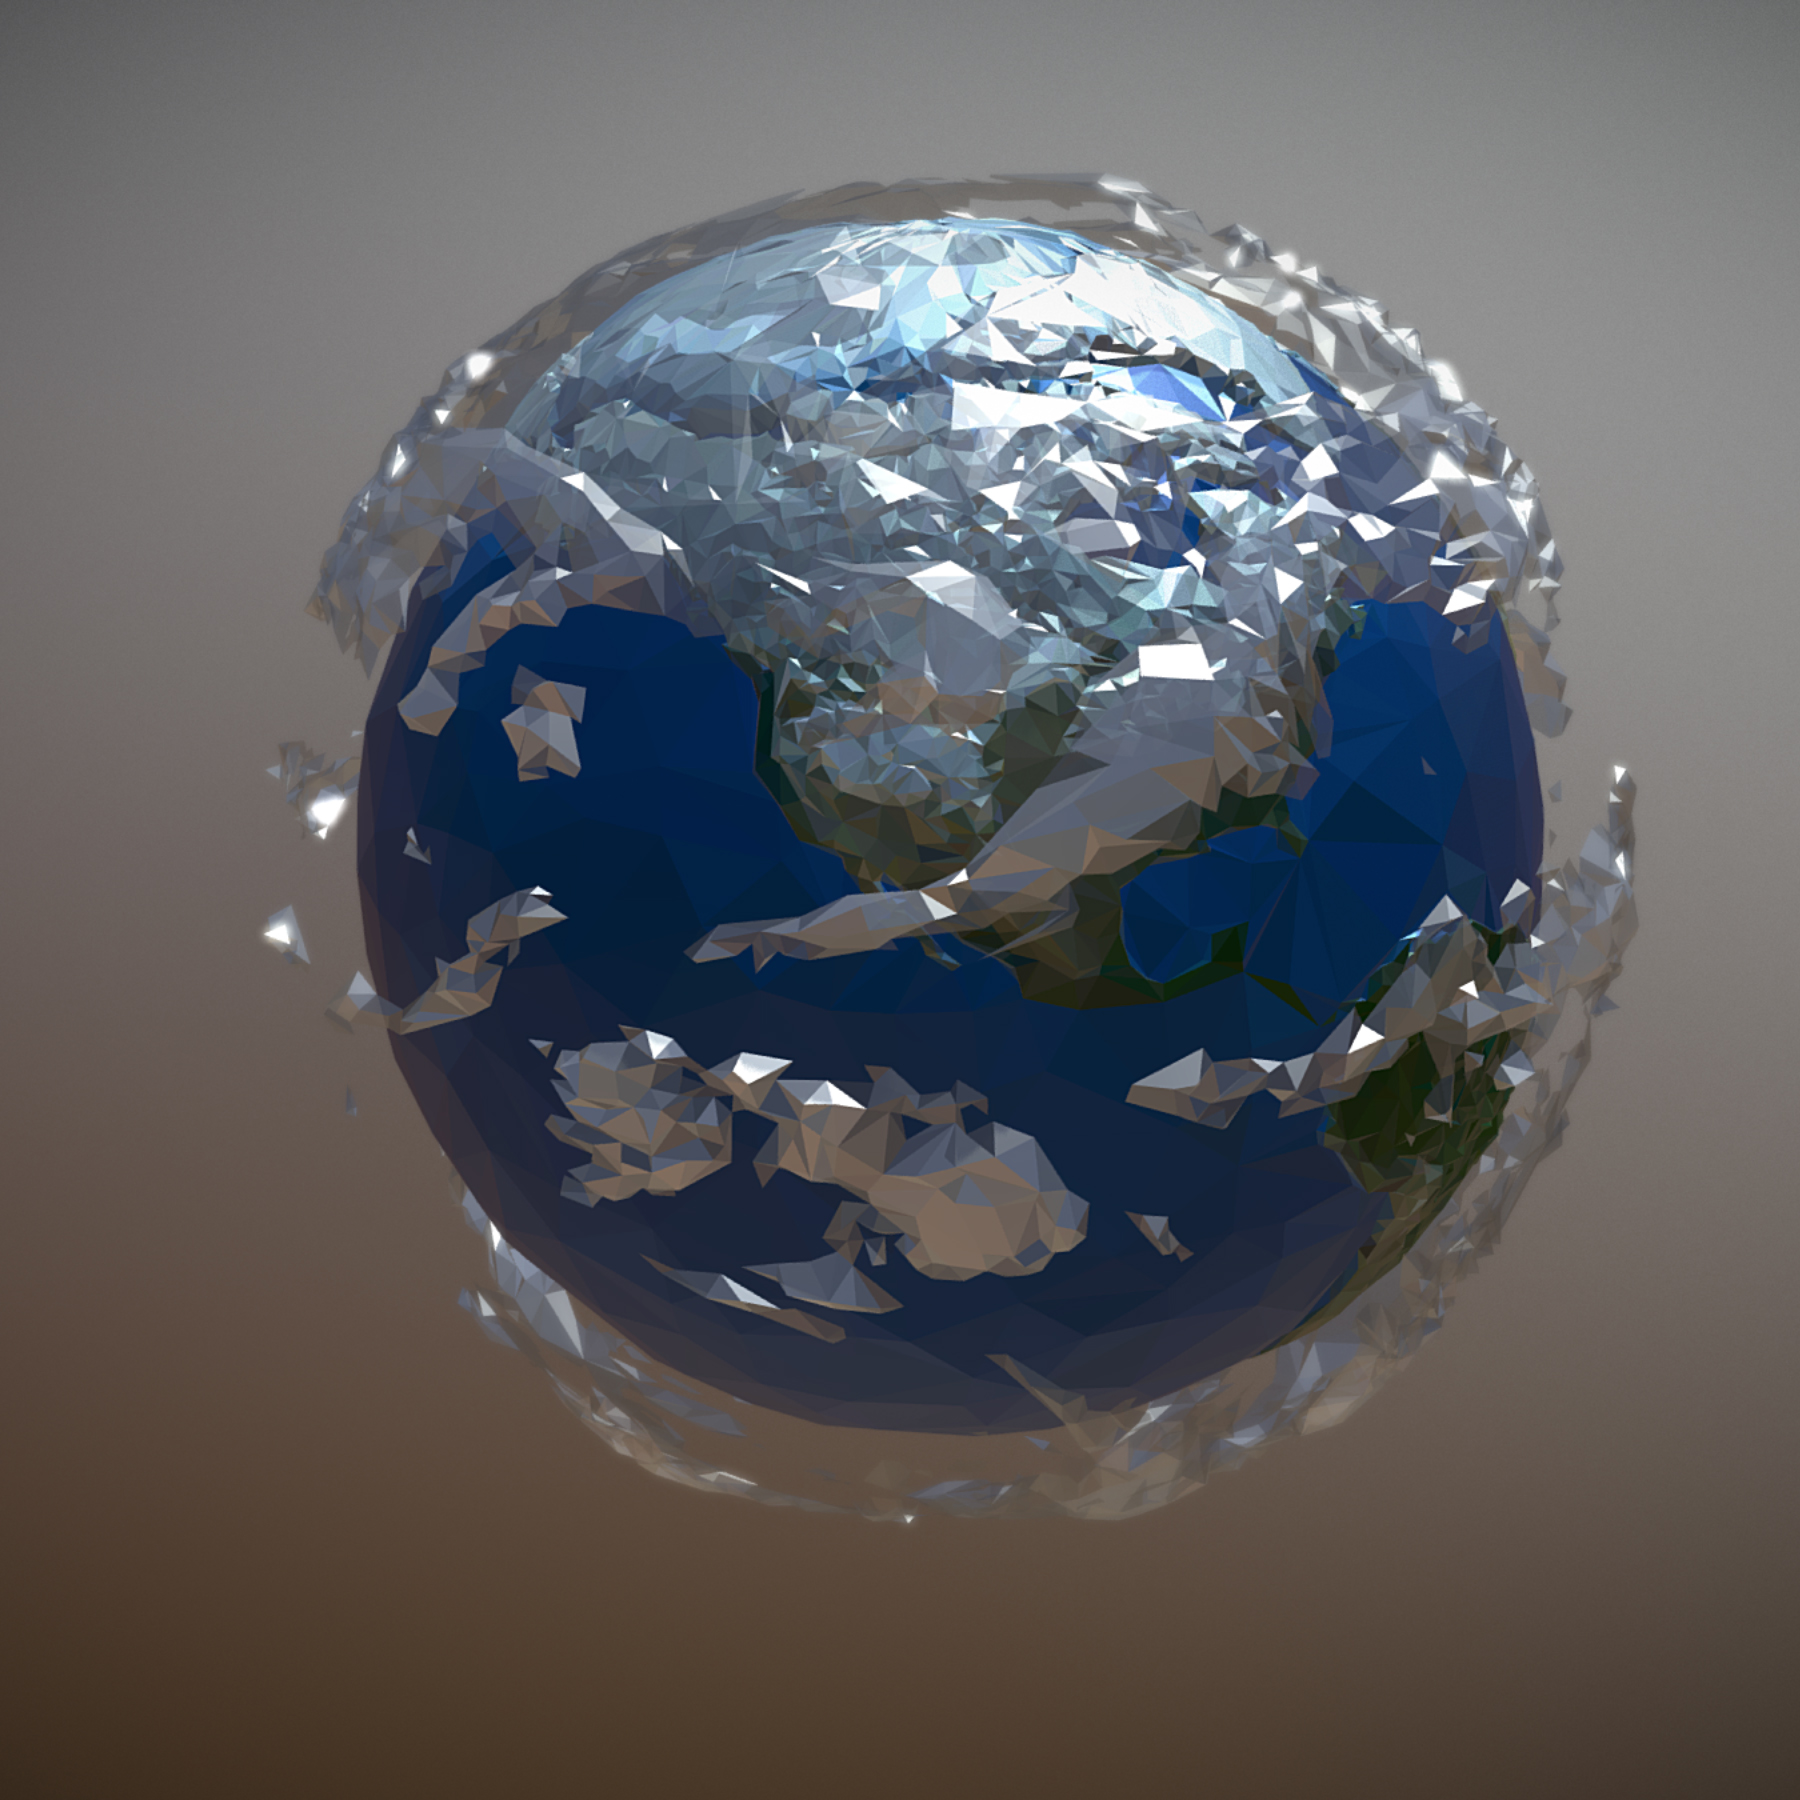 animated planet earth 3d model 3ds max fbx ma mb tga targa icb vda vst pix obj 271042